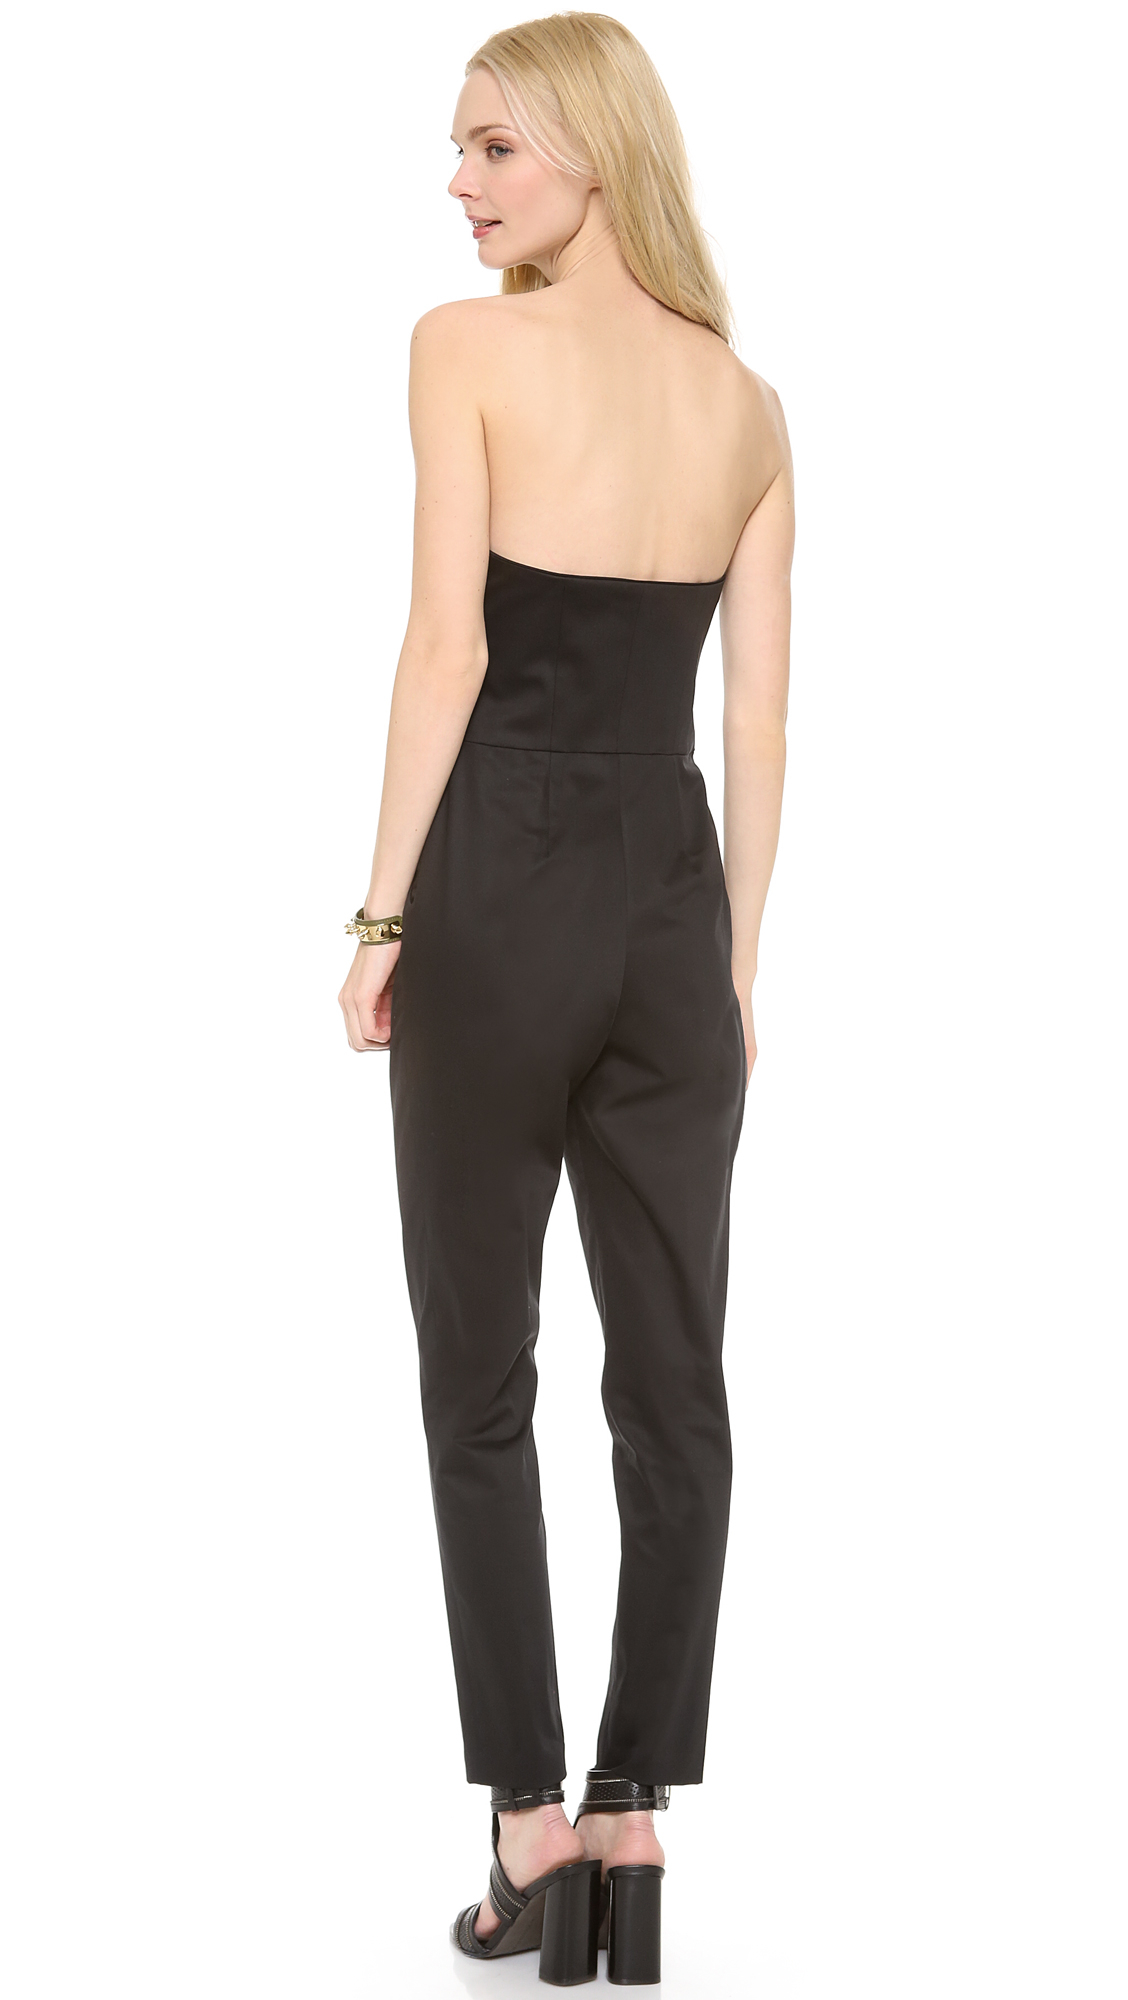 Lyst - Milly Strapless Jumpsuit in Black